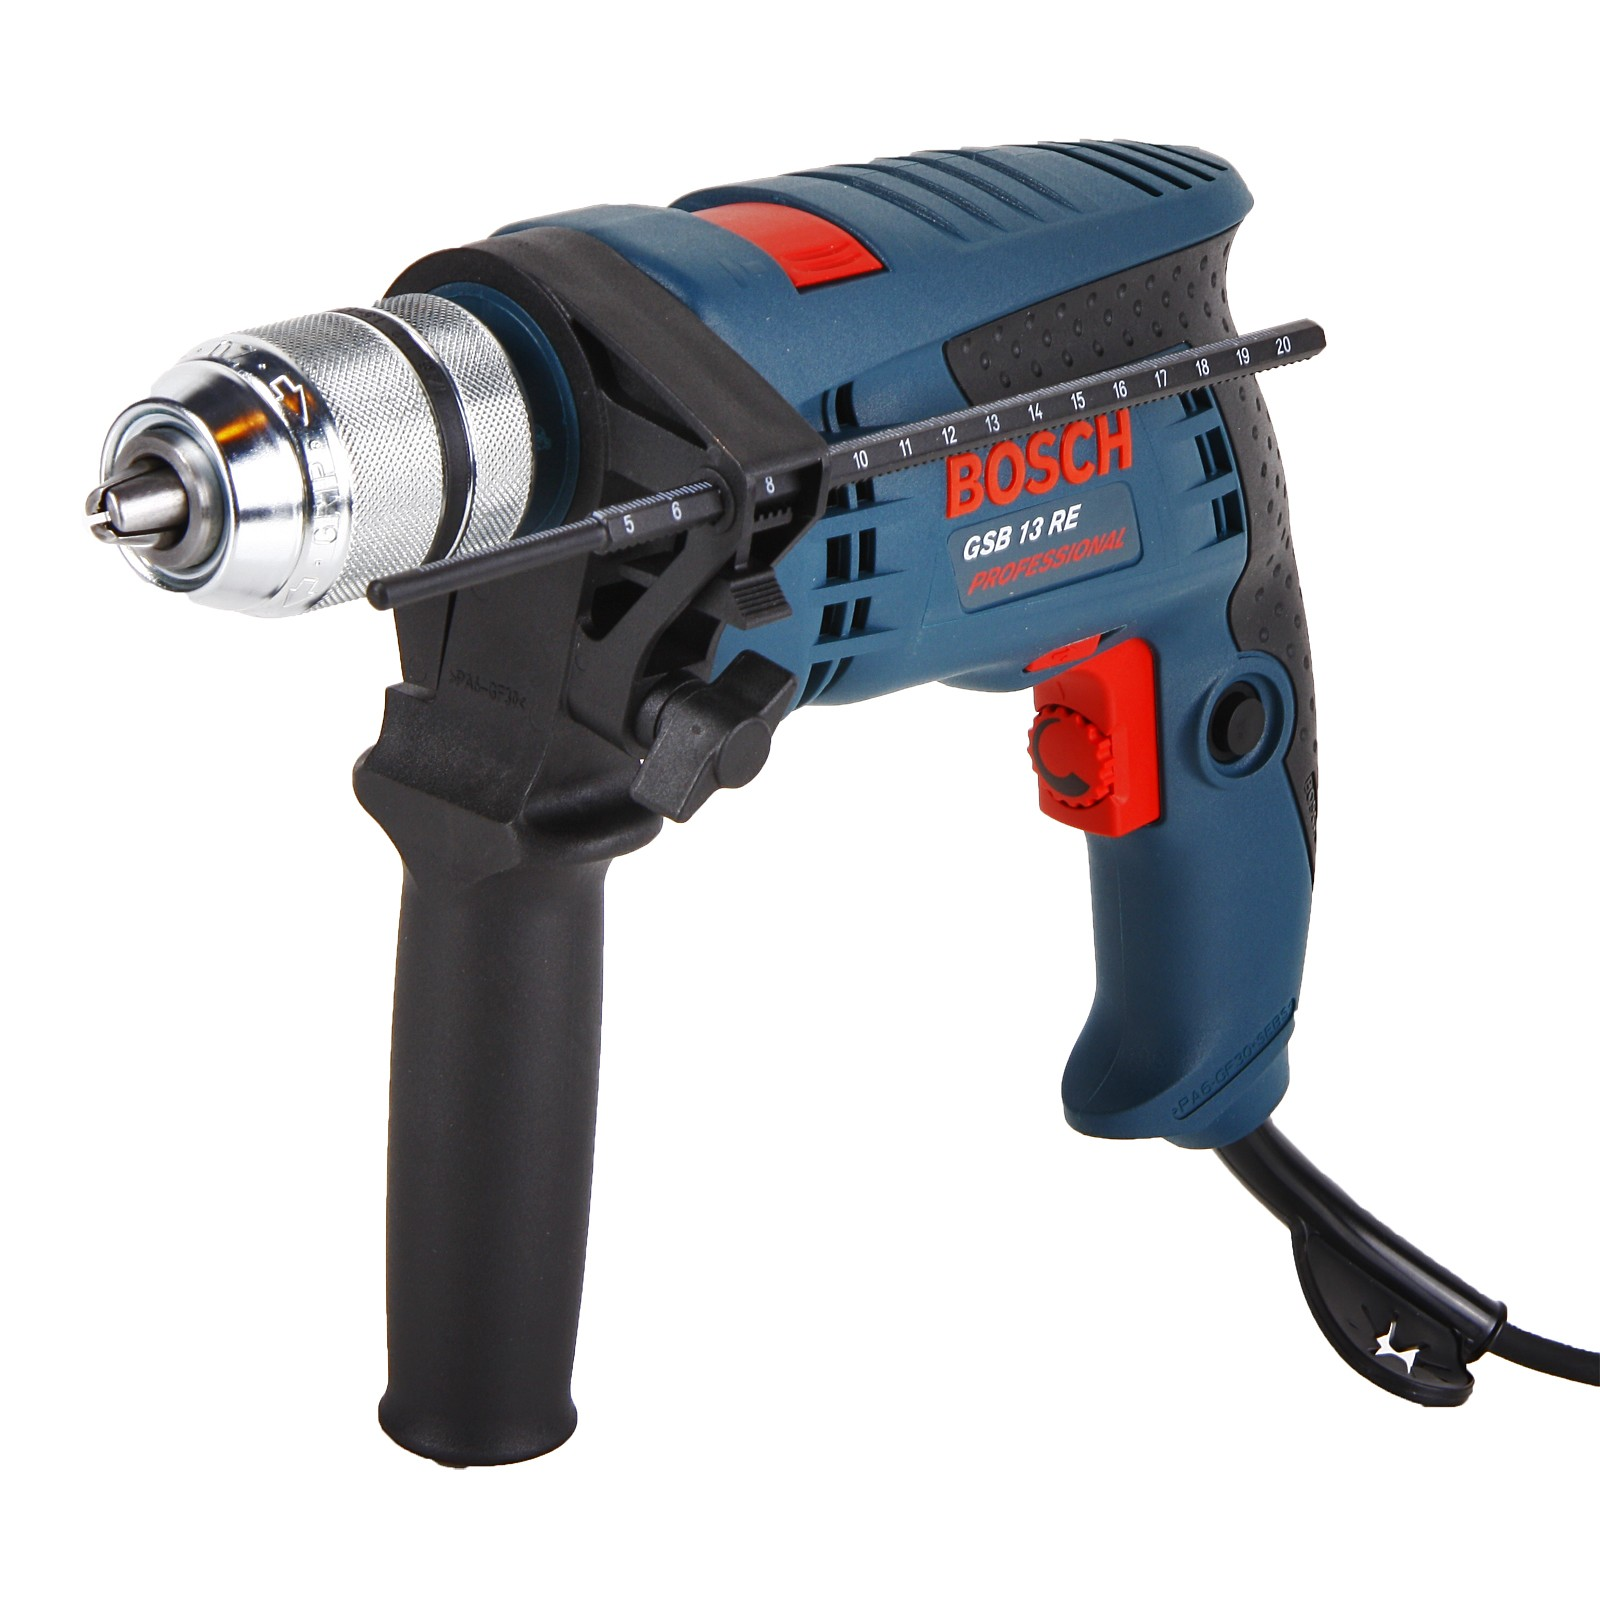 bosch gsb 13 re single speed 600w impact percussion drill. Black Bedroom Furniture Sets. Home Design Ideas